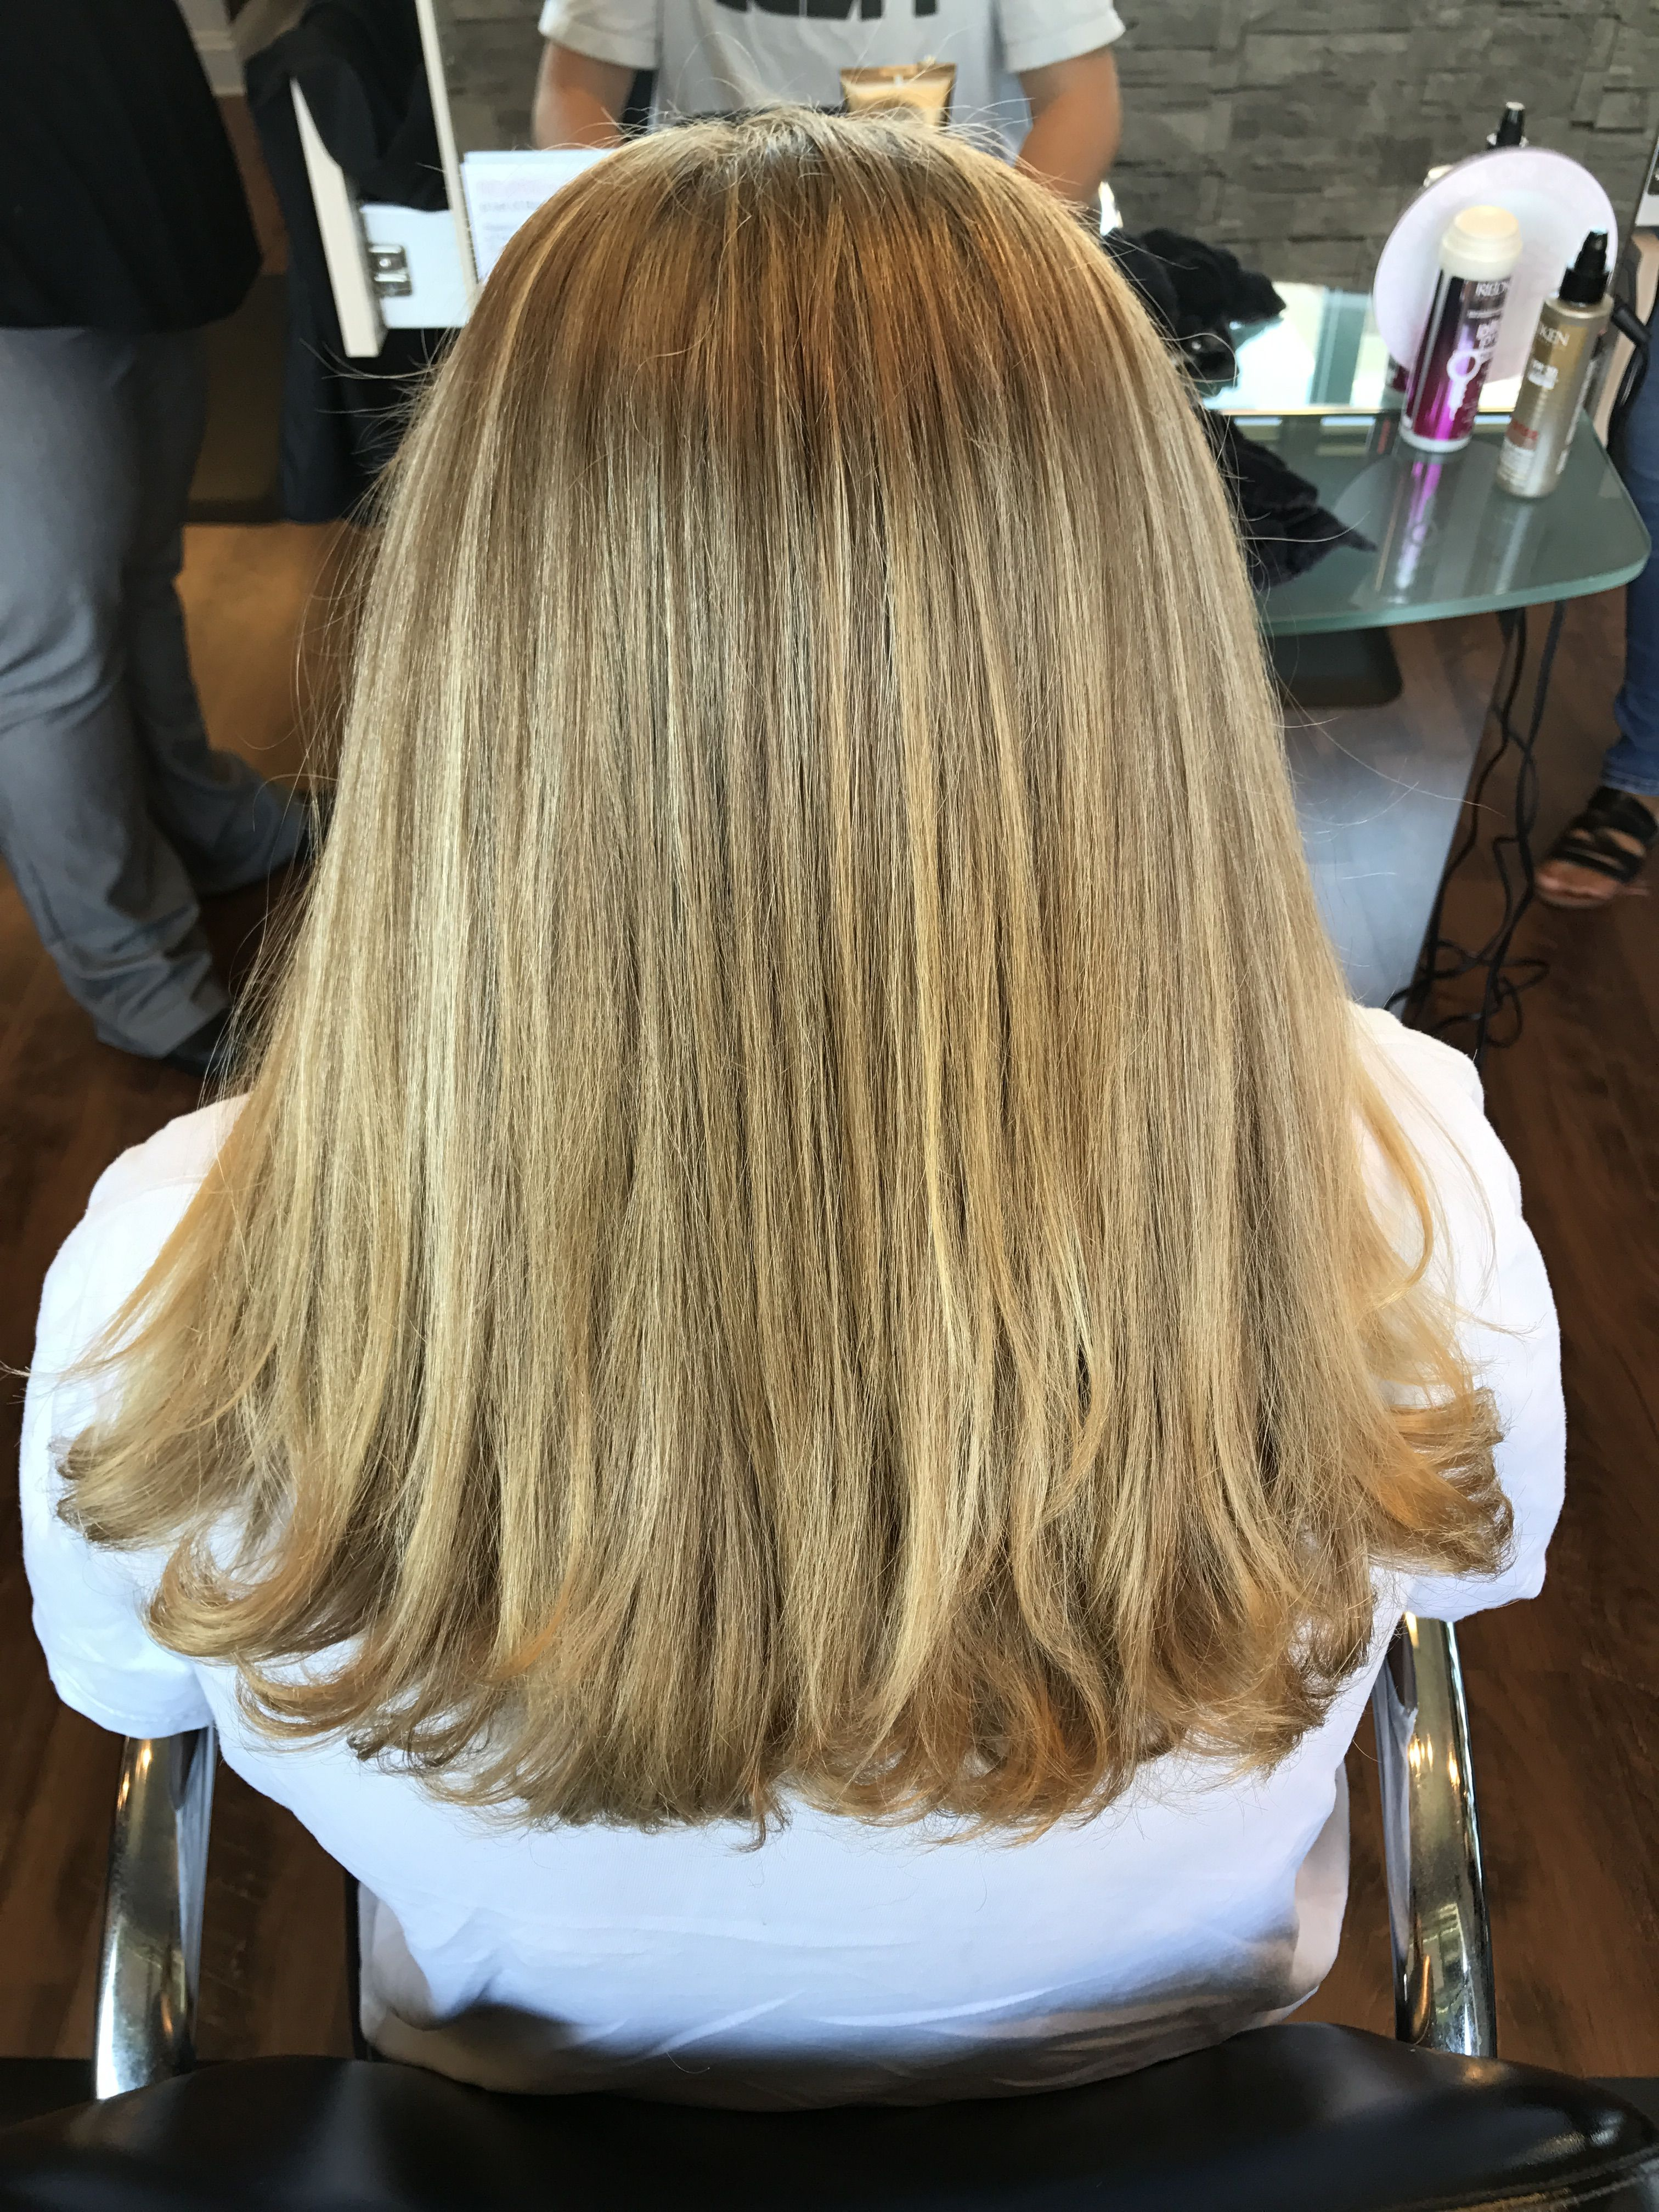 For Natural Highlights Add Lemon Juice To Your Hair Before You Go Outside In The Sun And Your Hair Will Lighten Throug Hair Long Hair Styles Natural Highlights